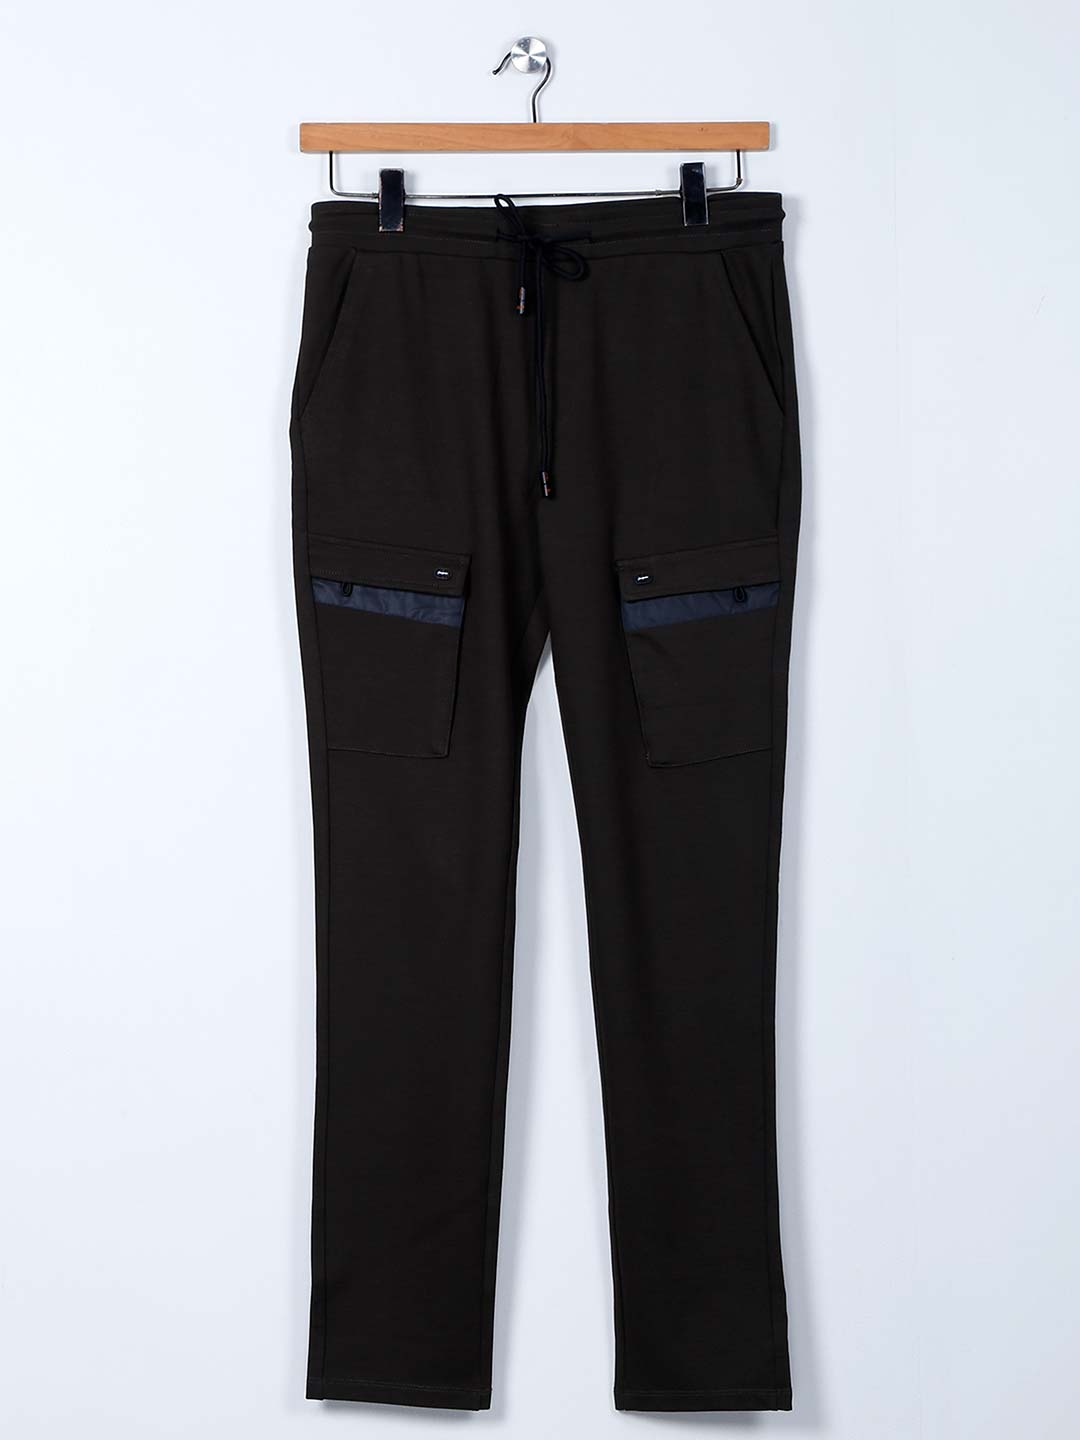 Cookyss olive cotton night track pant?imgeng=w_400